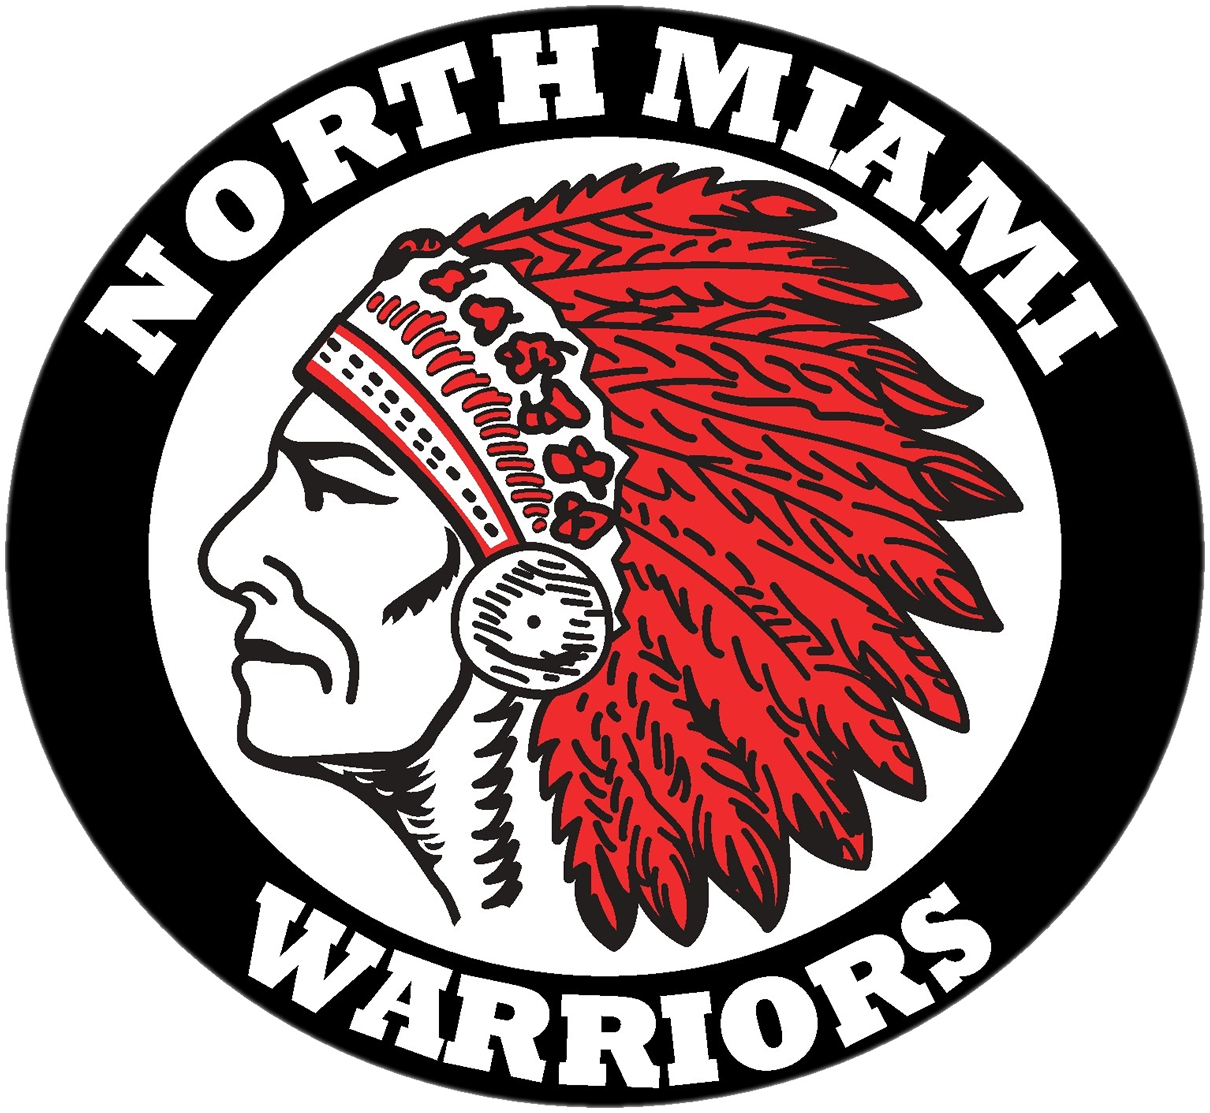 North Miami Warriors Return to Athletics